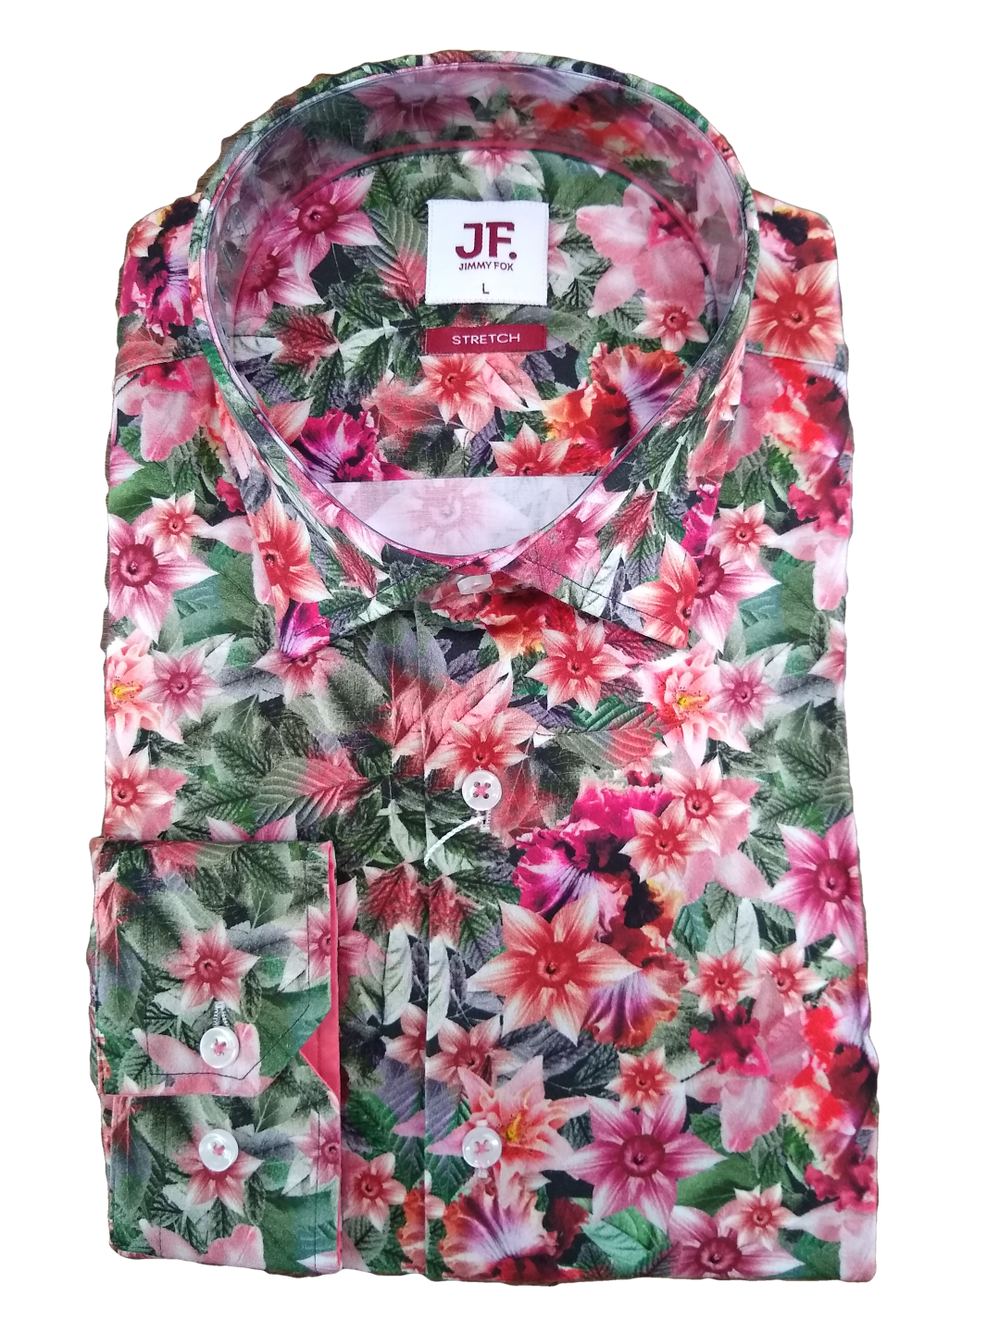 Jimmy Fox Floral Long Sleeve - JF-406